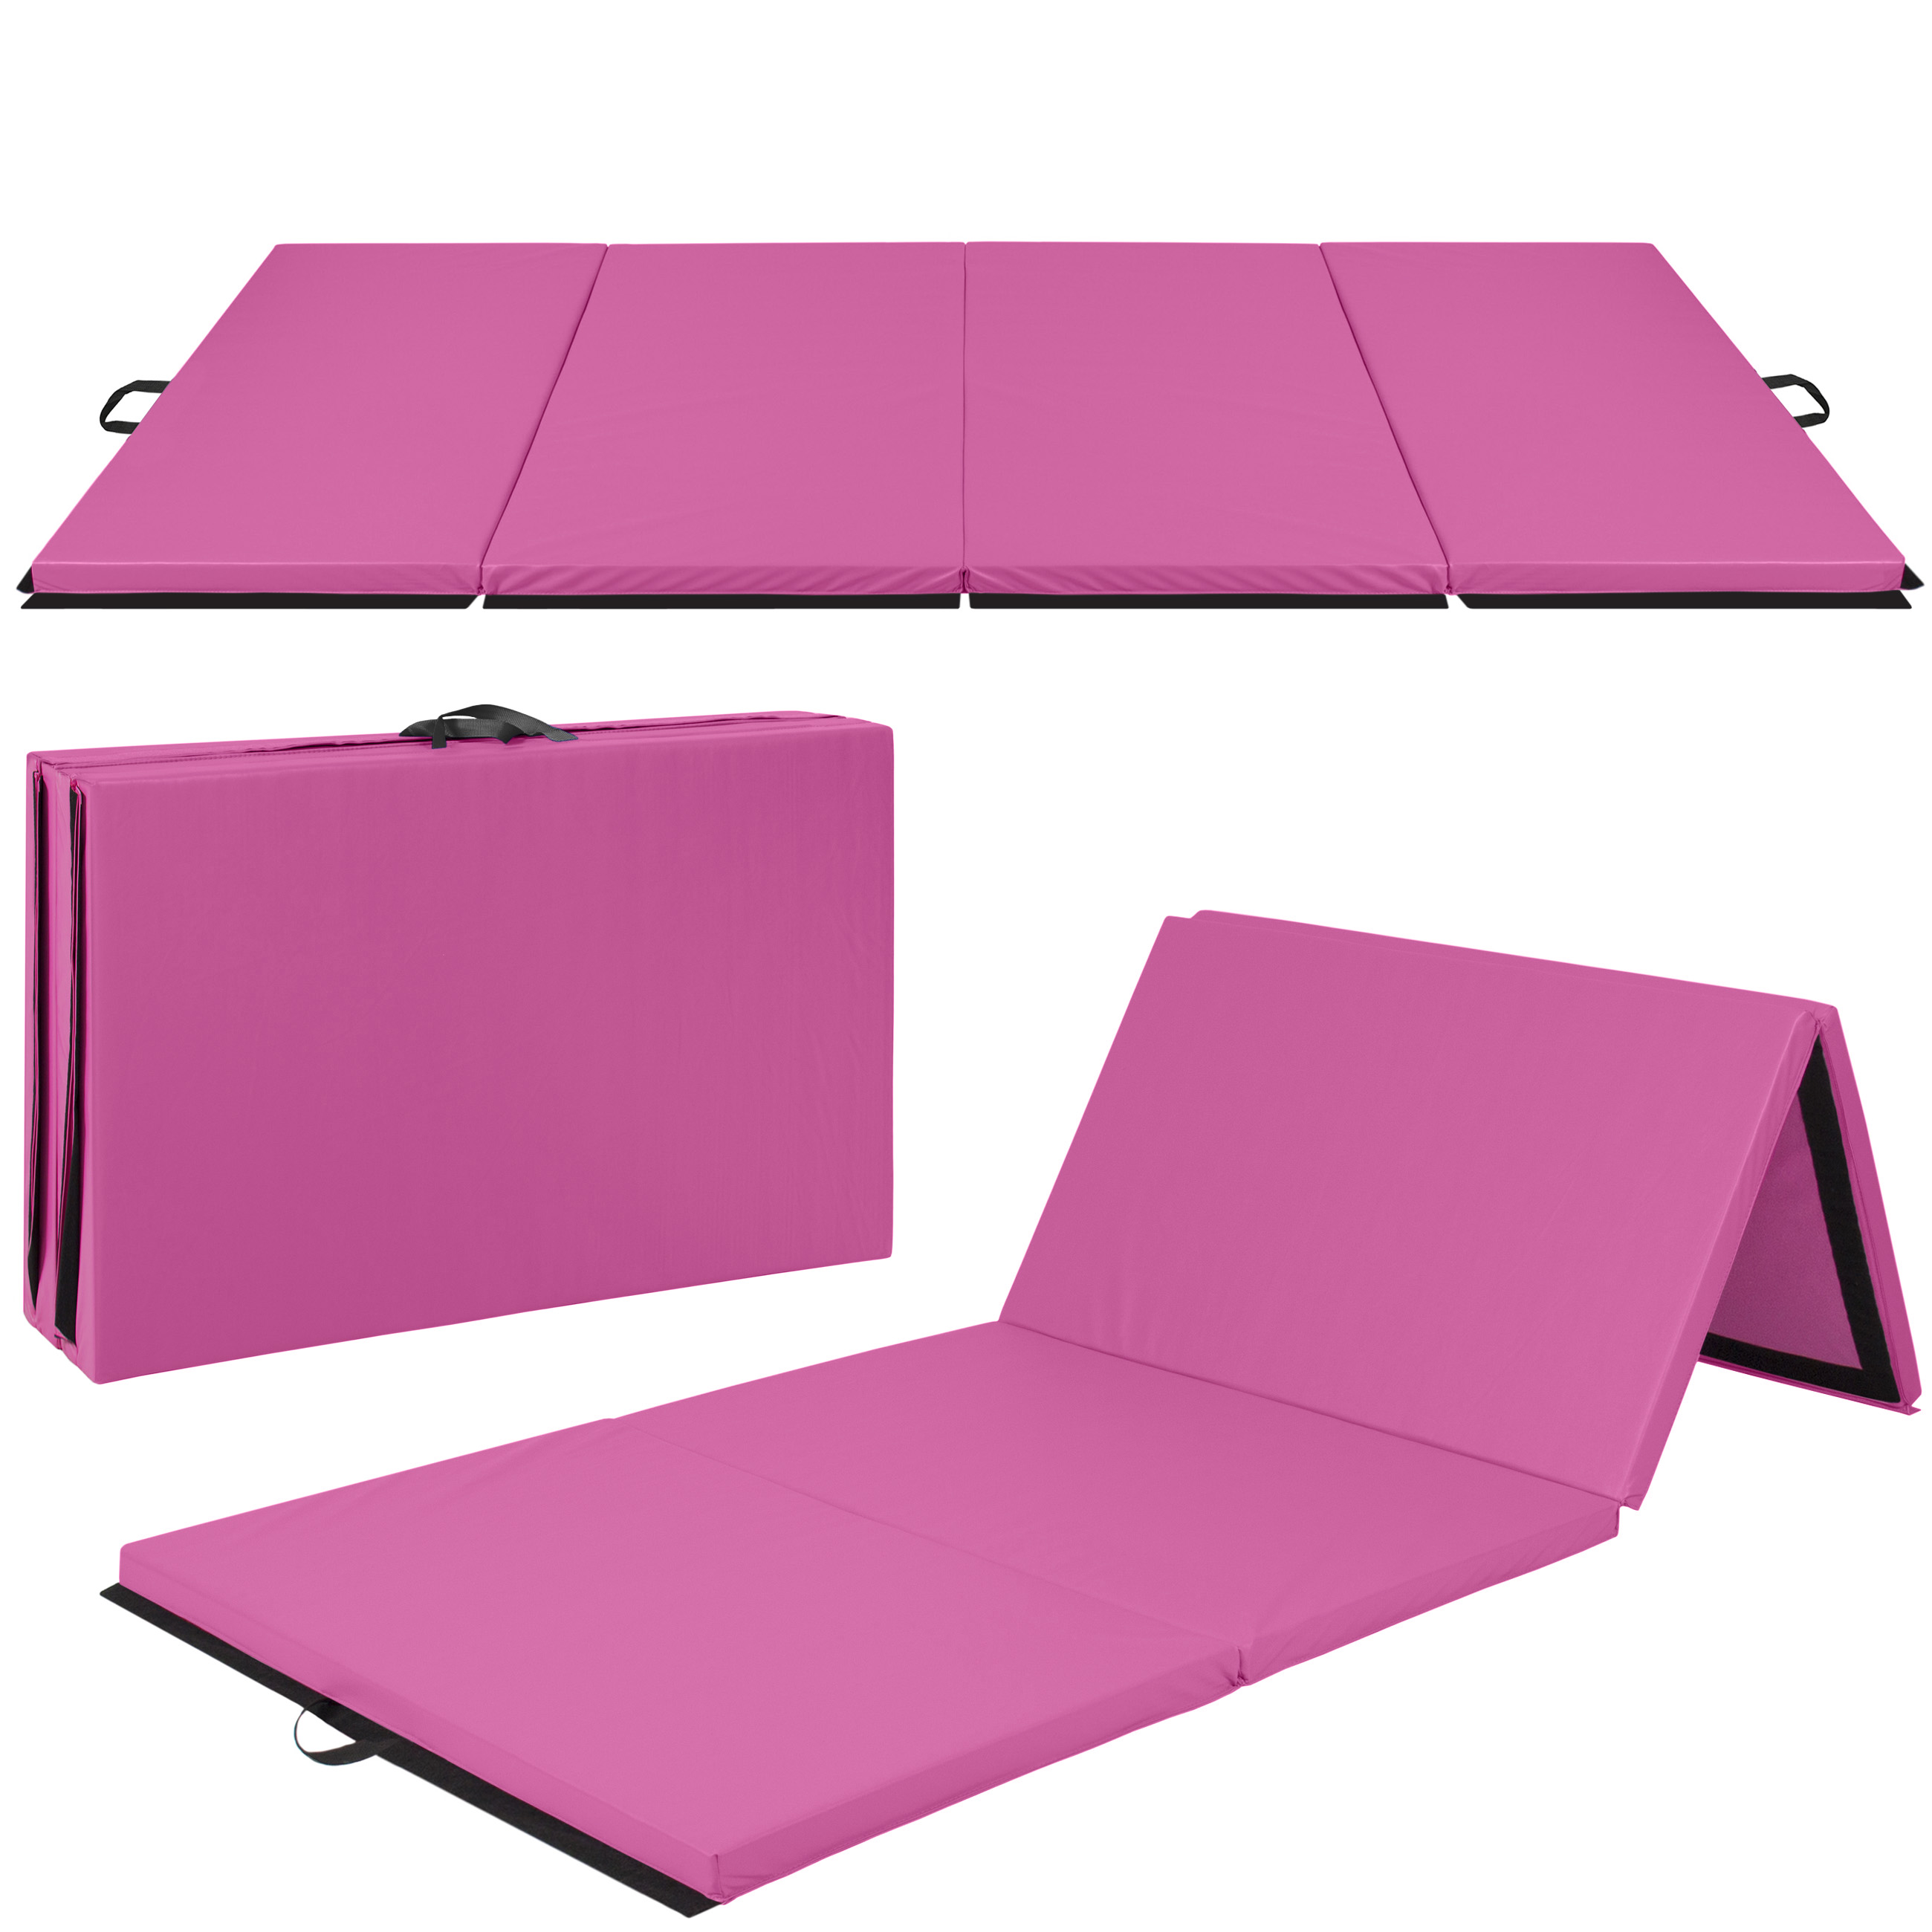 Folding 8' Exercise Gym Mat Pink For Gymnastics, Aerobics